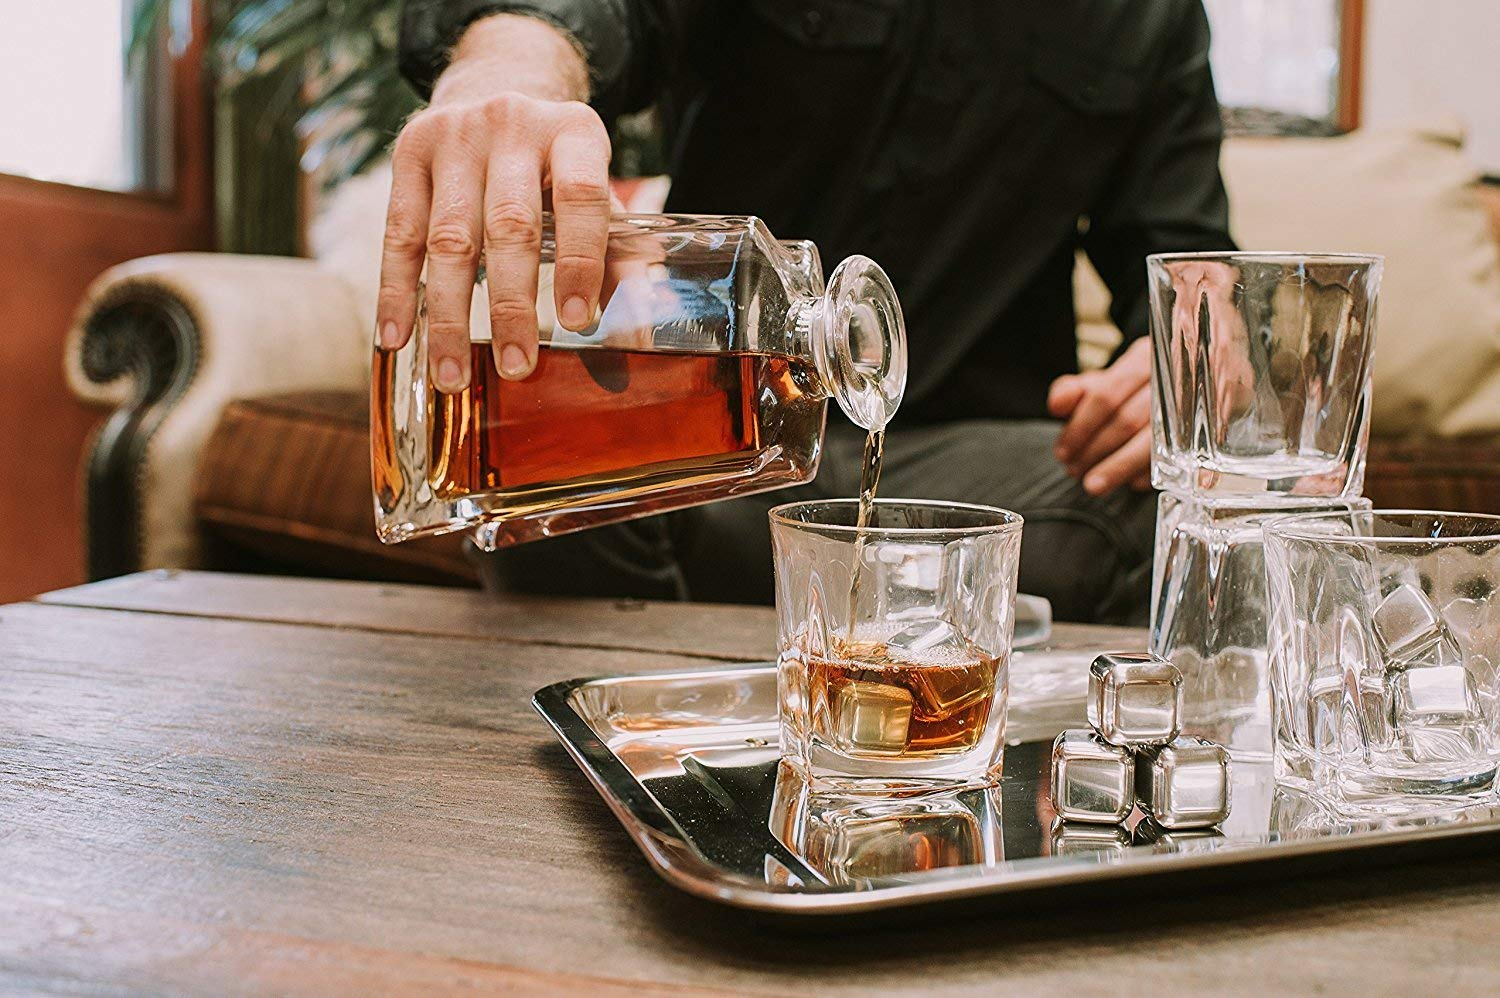 Whiskey Decanter Set by Opul (10 Piece Set) - Includes Crystal Whiskey Glasses Set, Whiskey Stones, Stainless Steel Tray and Tongs - Elegantly Designed to Last the Test of Time by OPUL (Image #6)